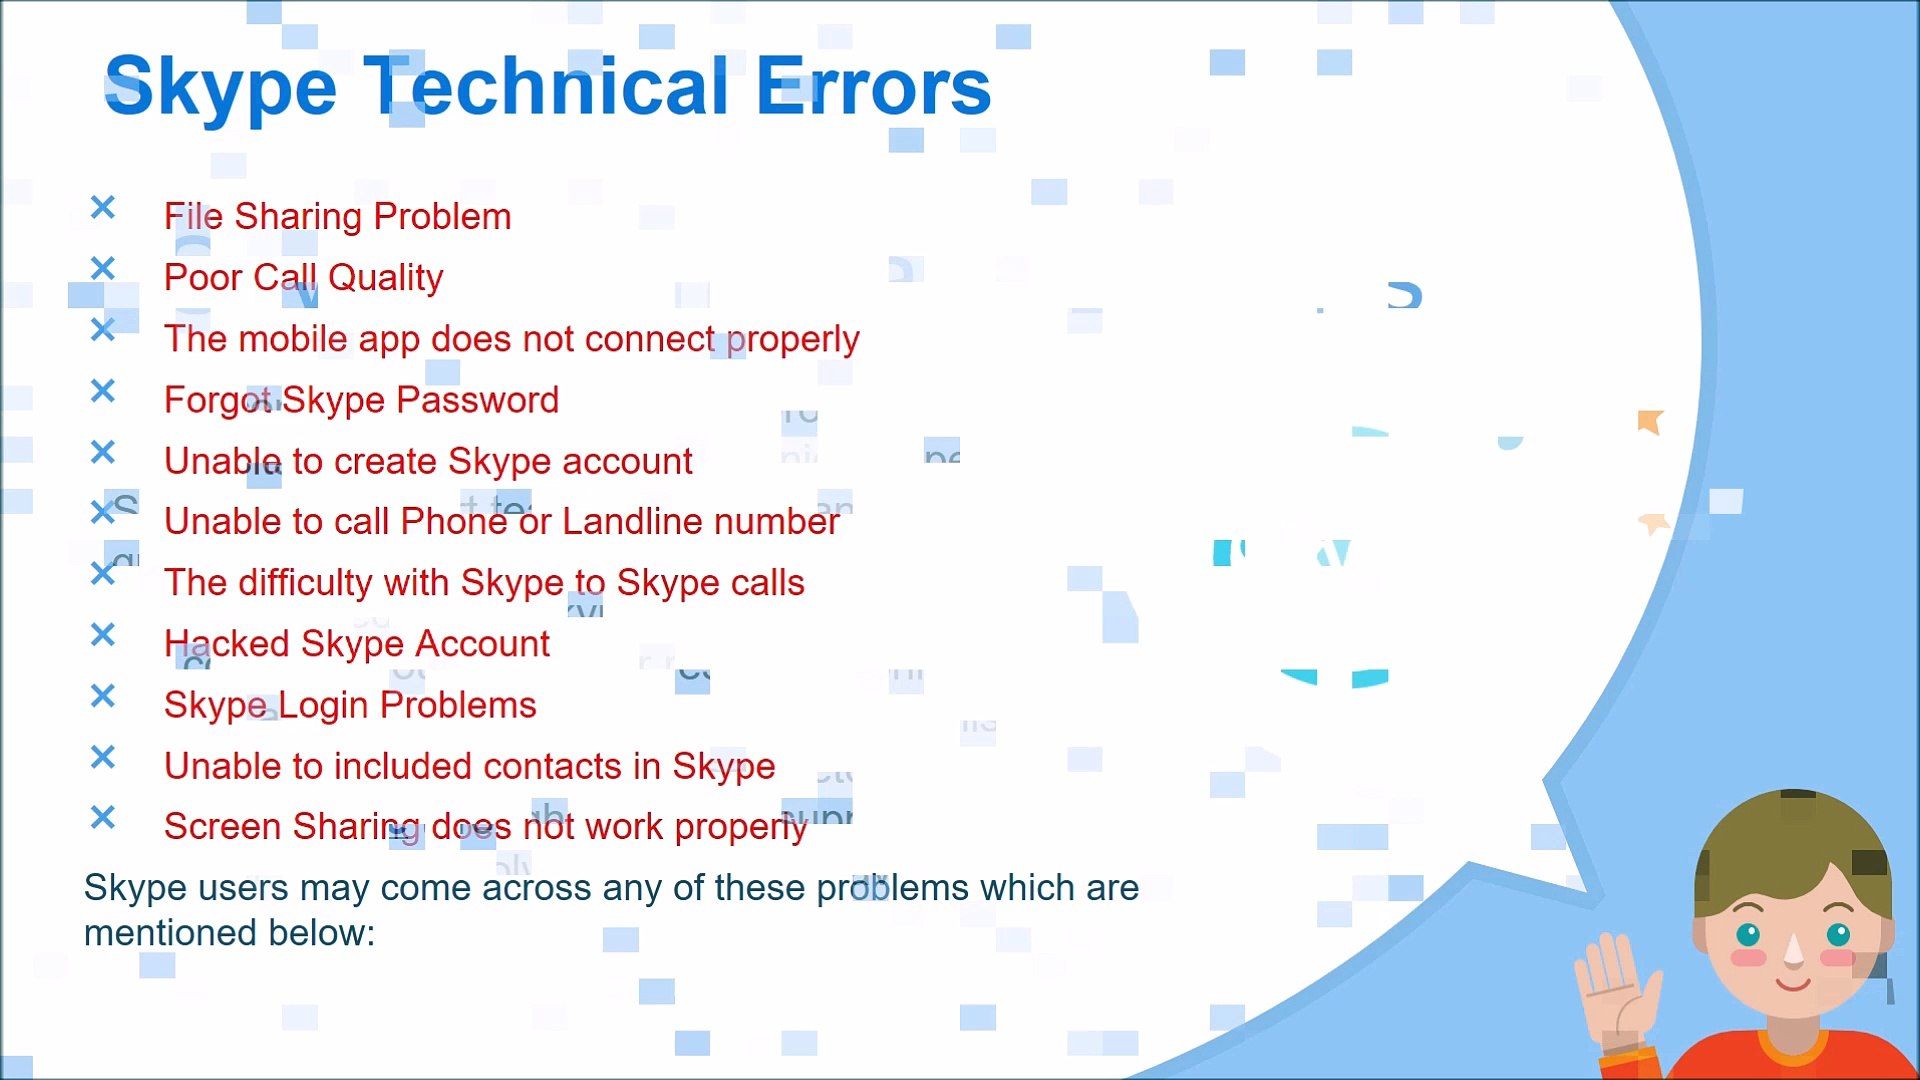 How to Fix 'Skype has Stopped Working' Error?